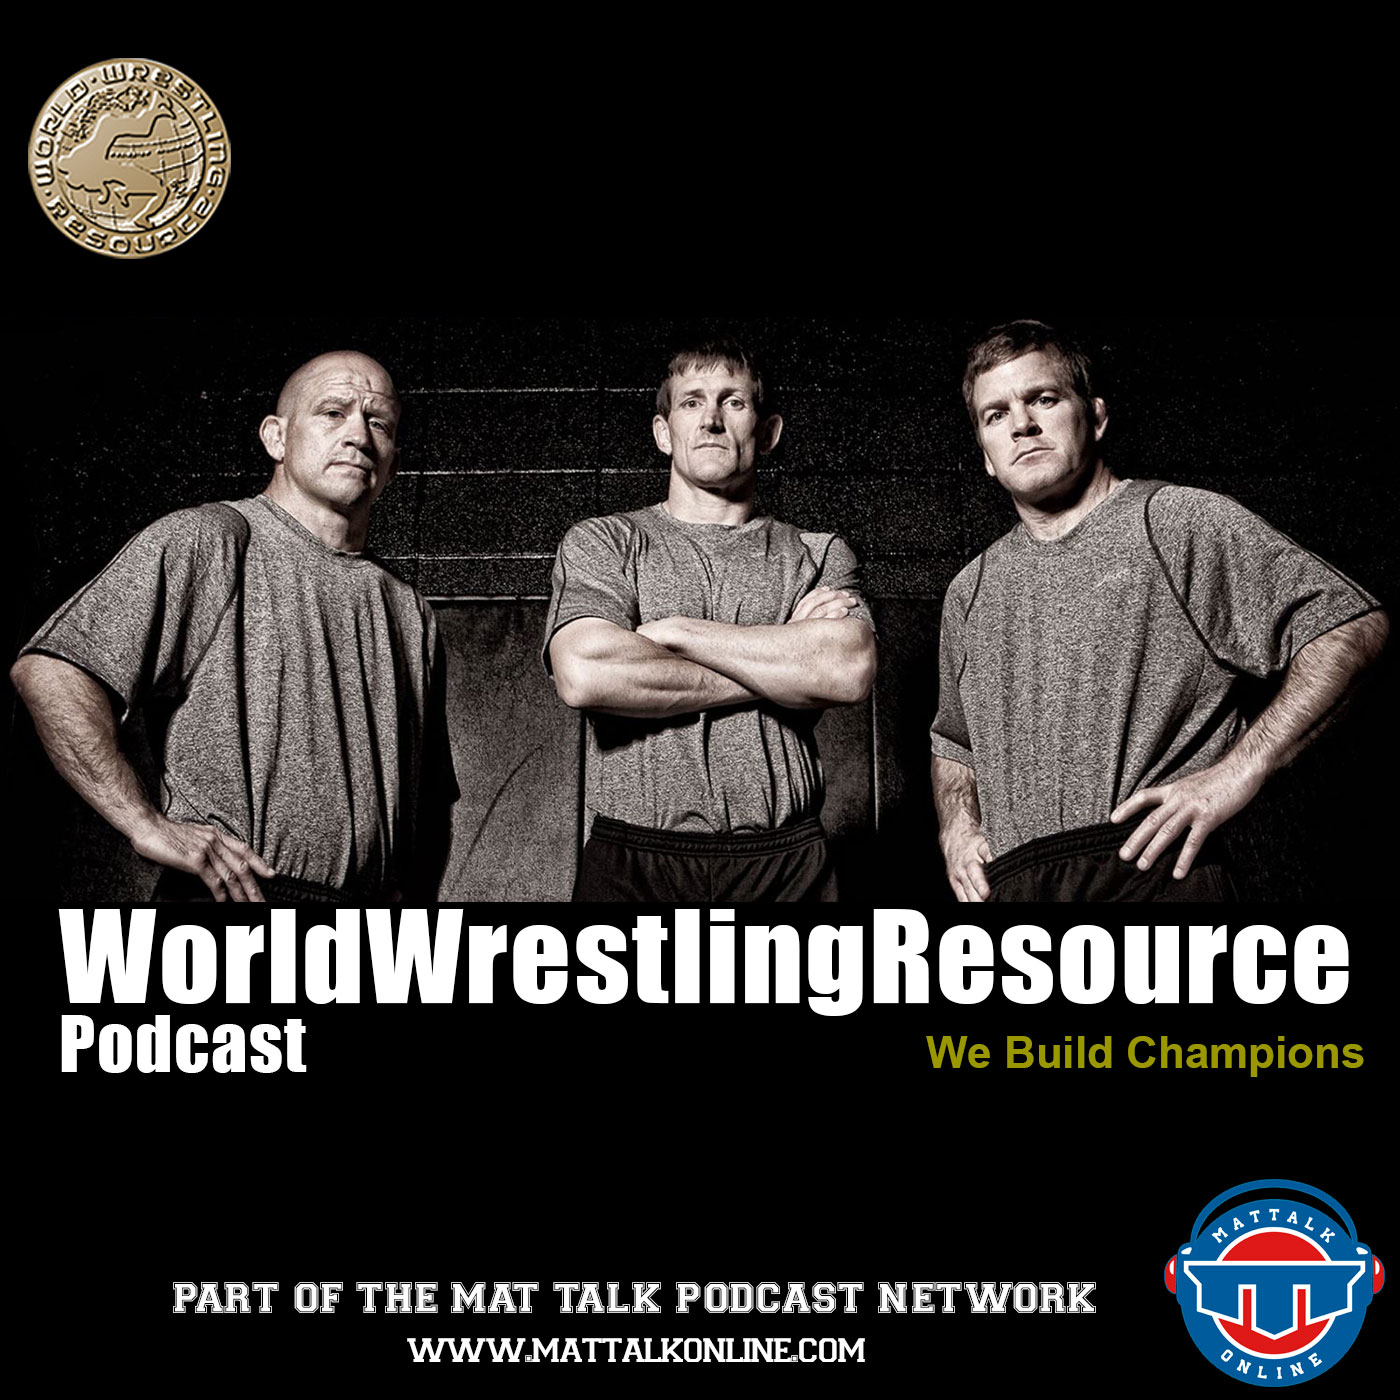 Artwork for WWR: Terry Brands talks Dave Schultz and Brent Metcalf - 7/8/14